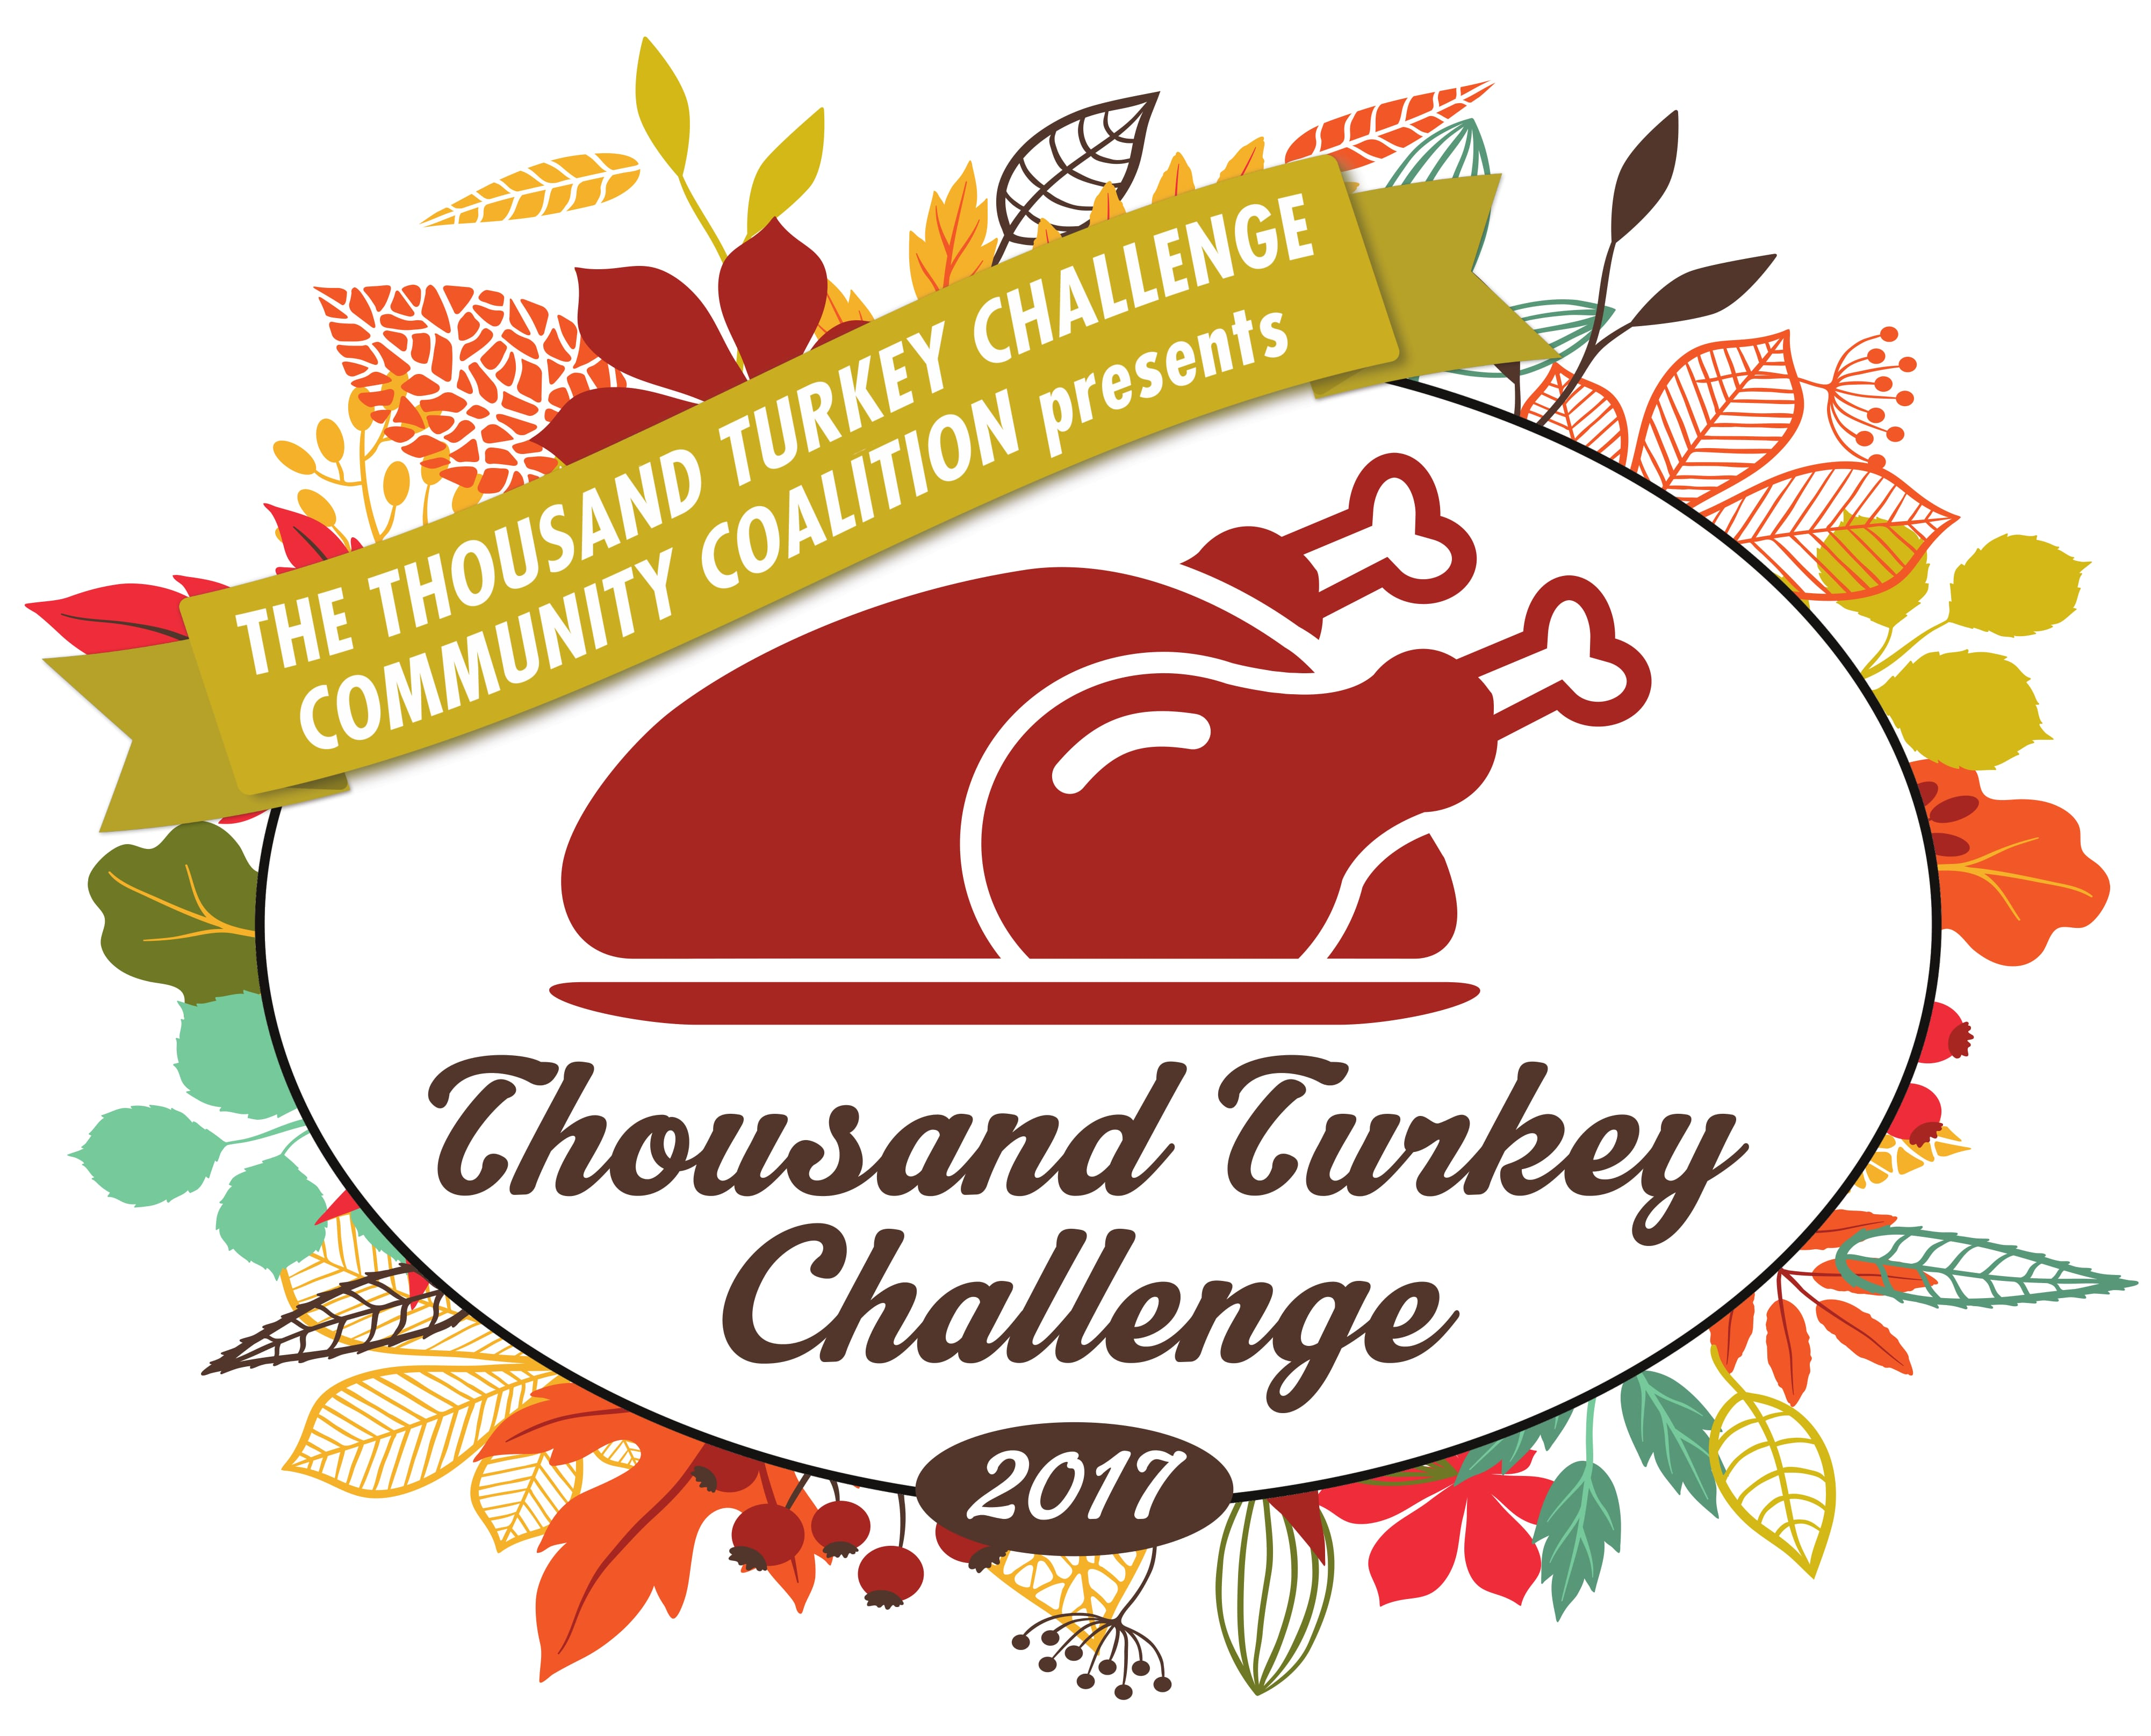 1000 Turkey Challenge Launch taking place on November 19, 2017 at the West Side Campaign Against Hunger at 12:15 p.m.